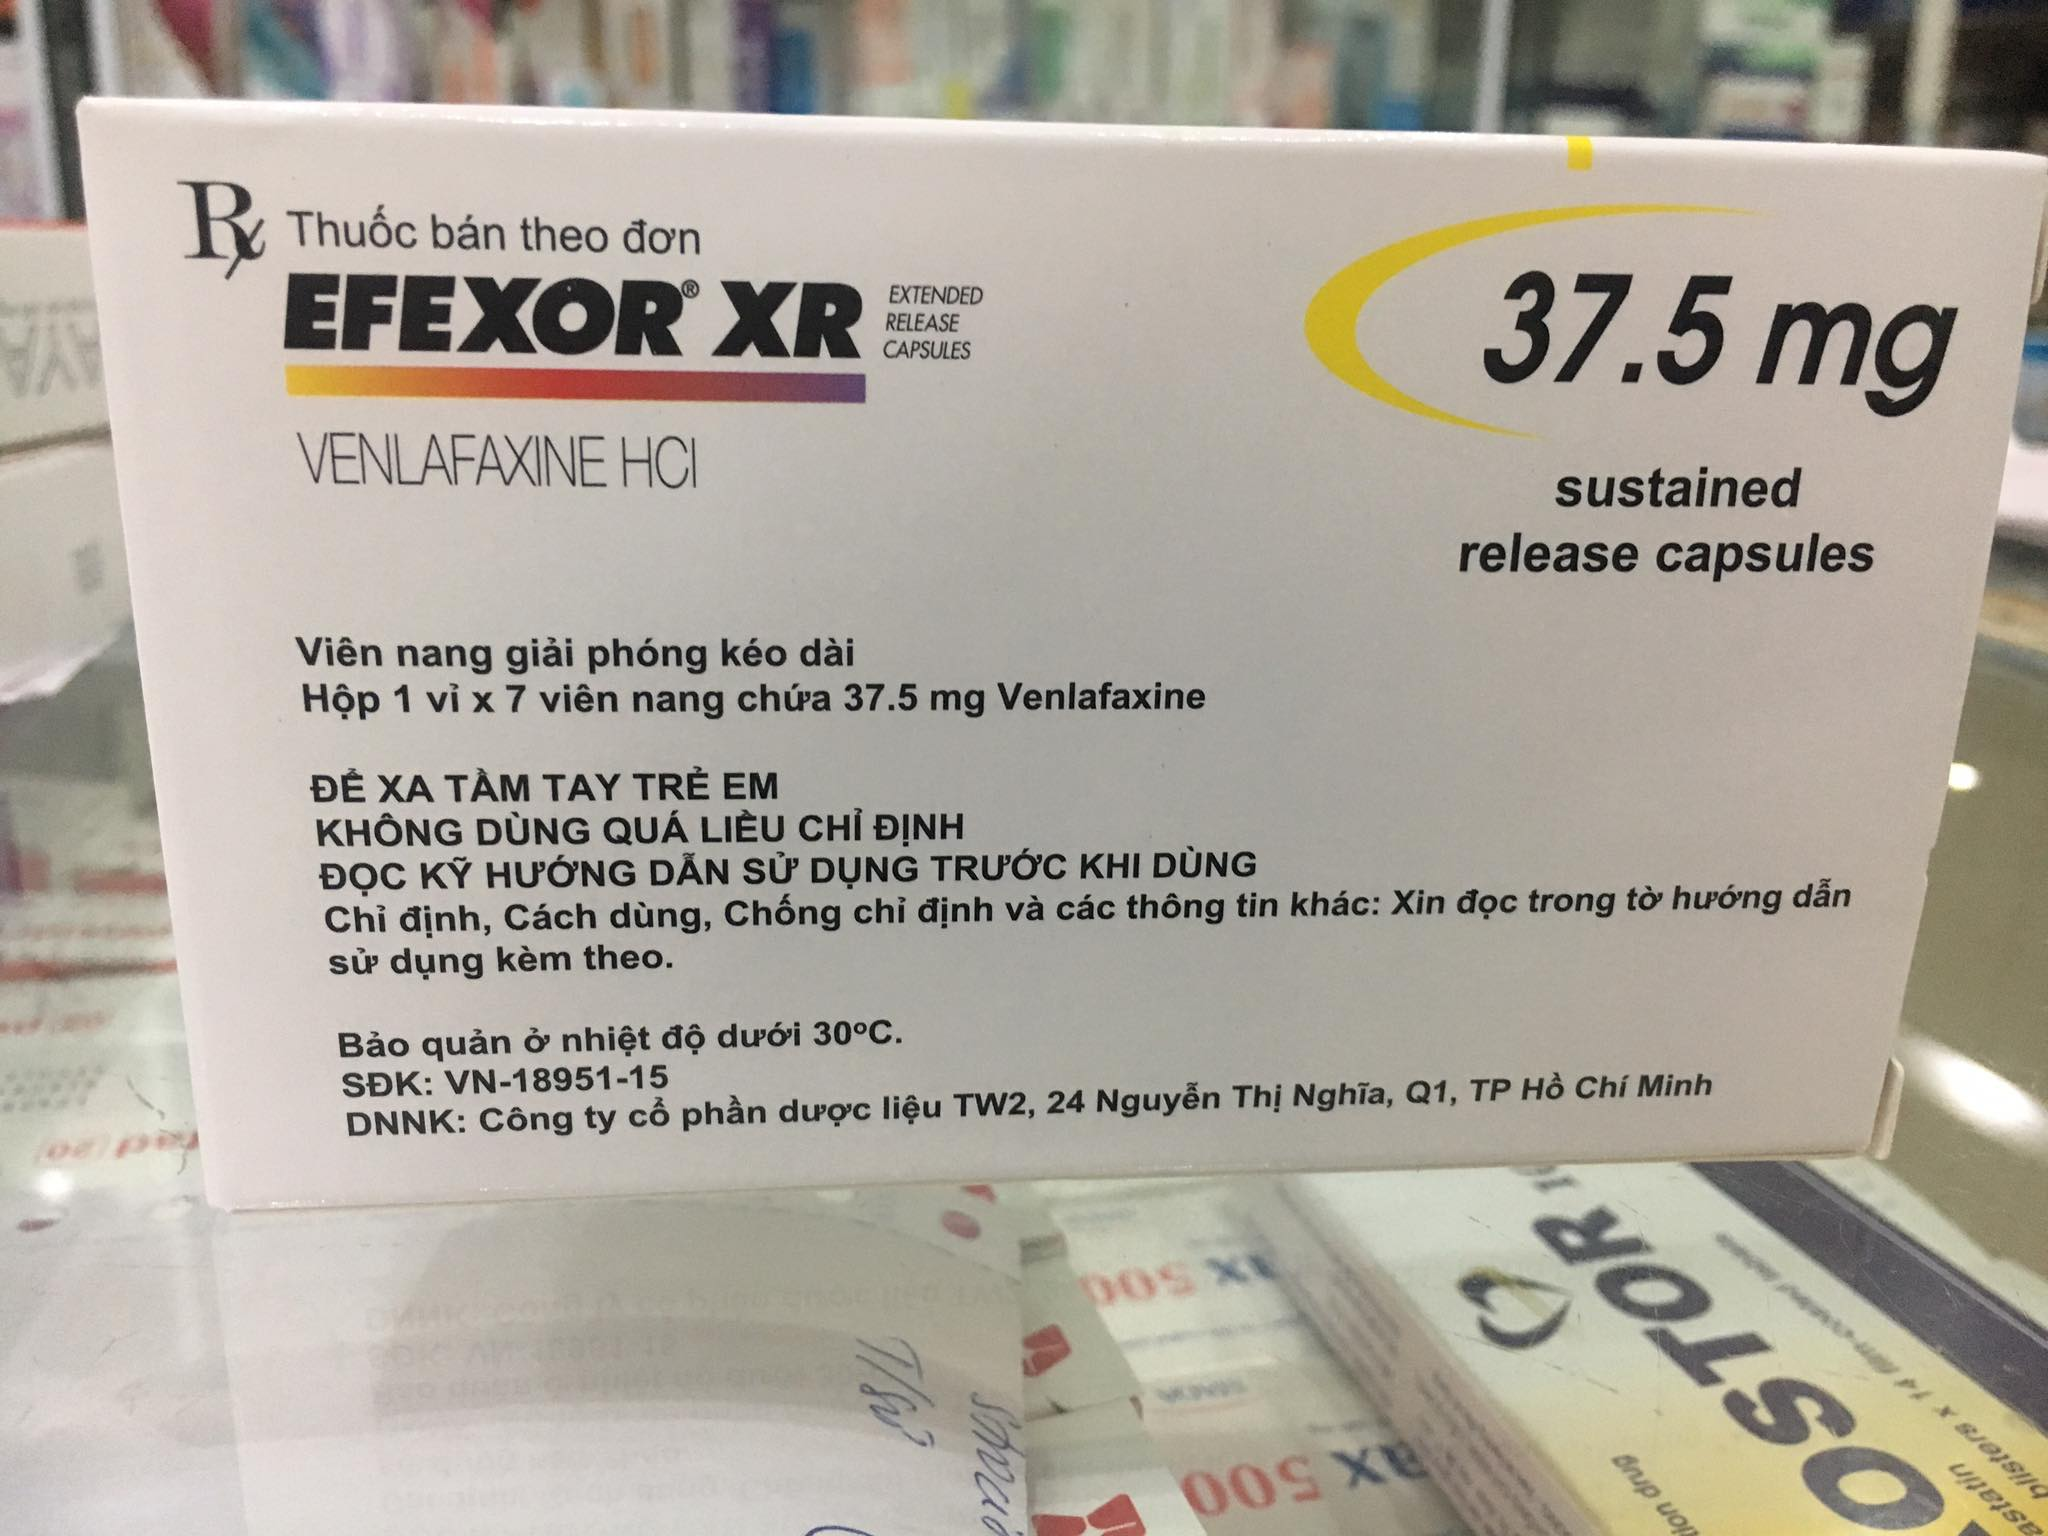 Efexor XR 37.5mg